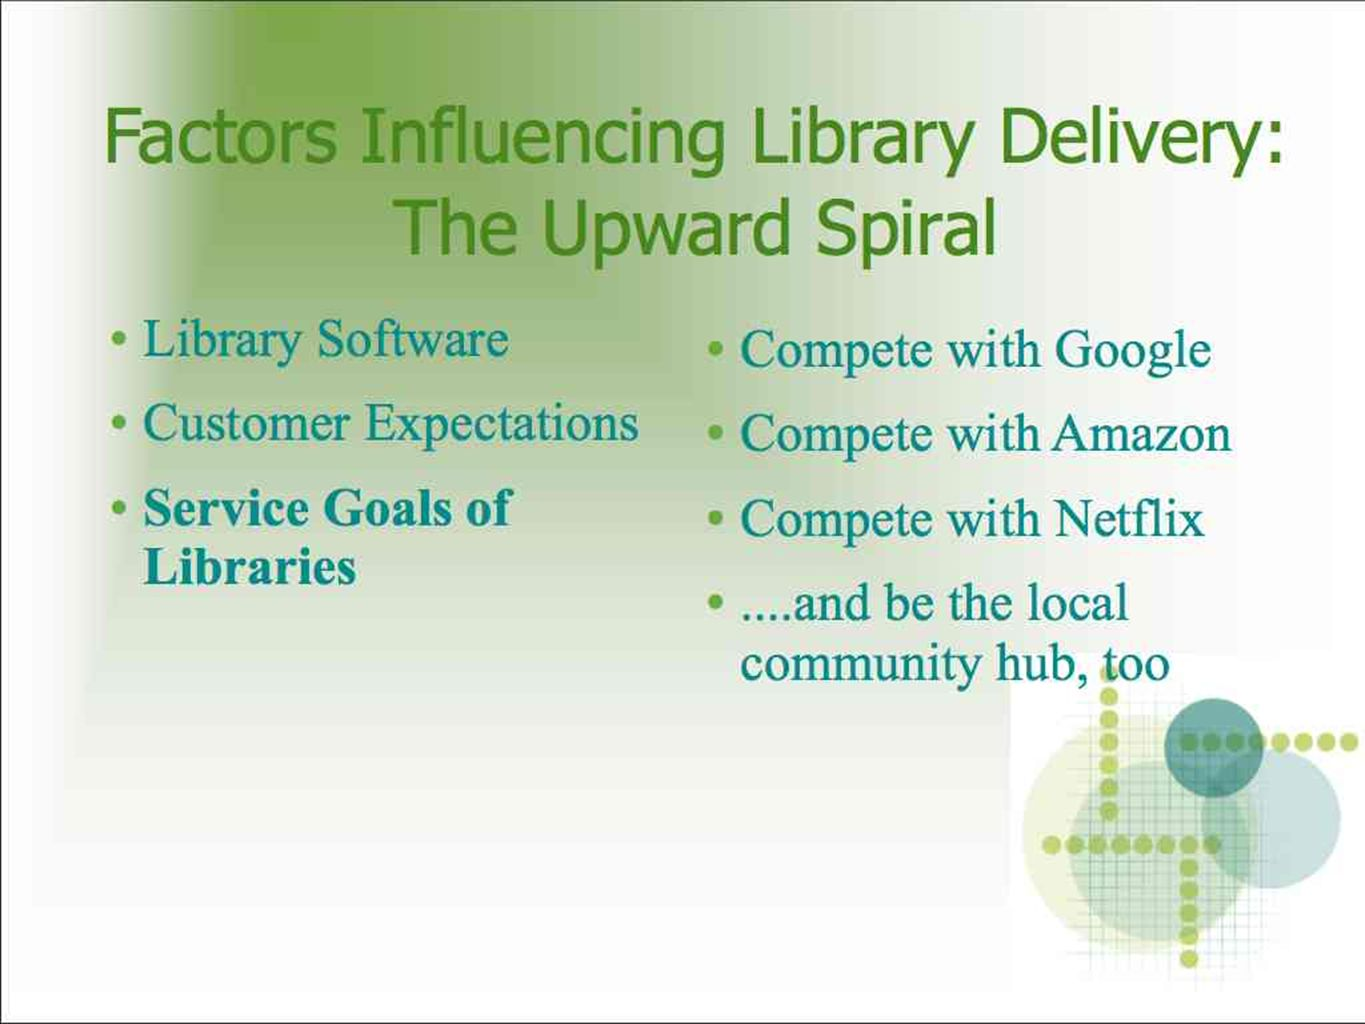 Library Software Customer Expectations Service Goals of Libraries Compete with Google Compete with Amazon Compete with Netflix....and be the local community hub, too Factors Influencing Library Delivery: The Upward Spiral